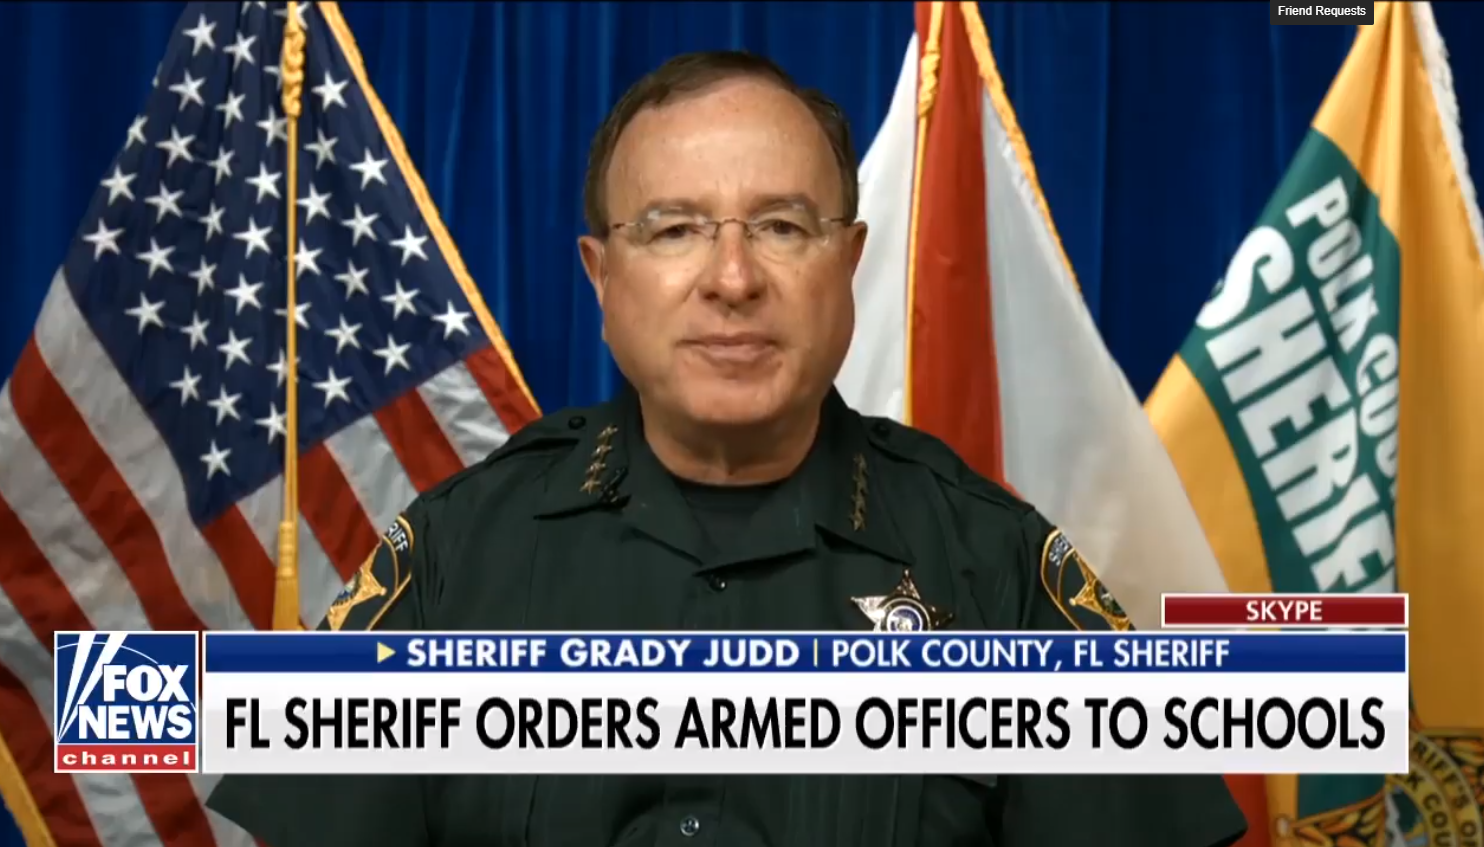 Video: FL Sheriff Orders Armed Officers to Schools After TX Shooting